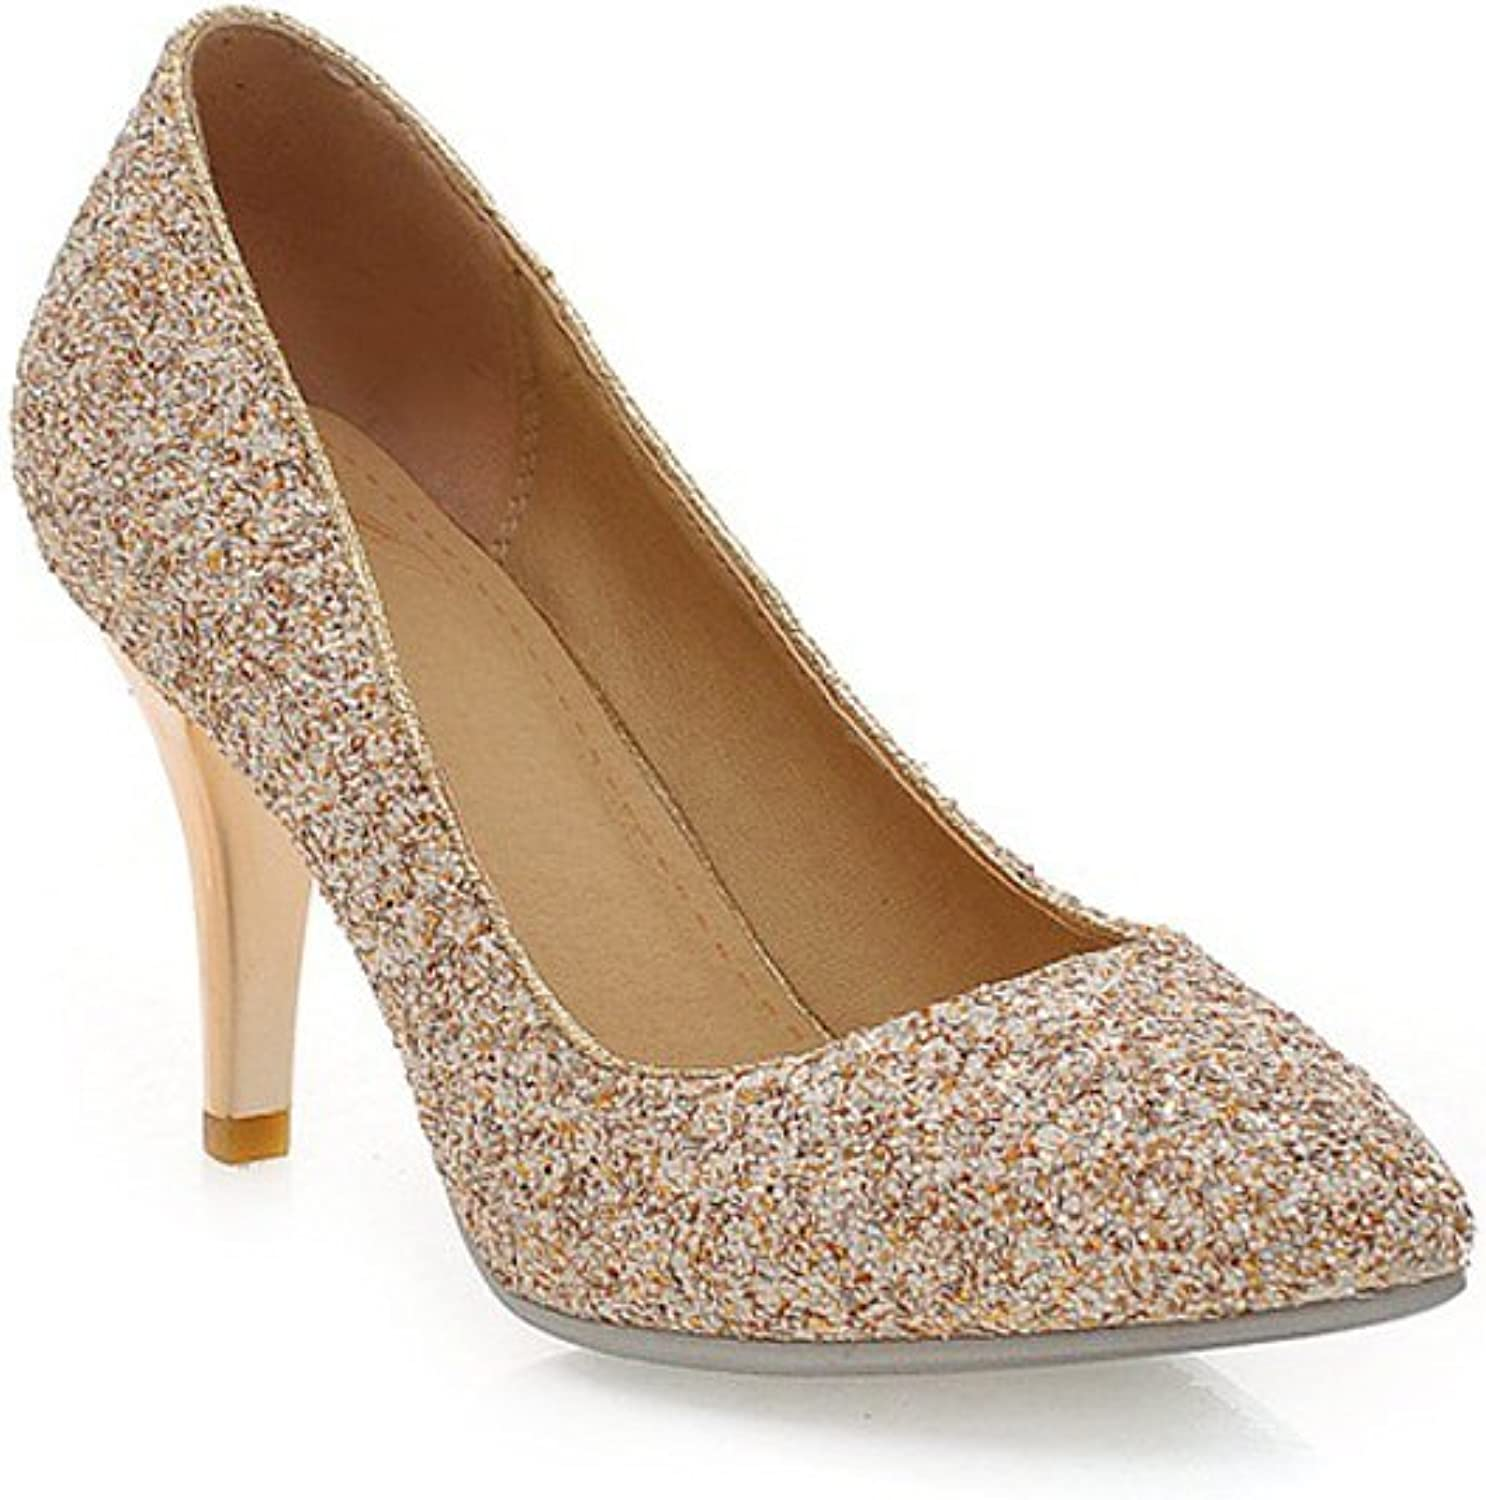 Lucksender Womens Sexy Pointed Toe High Heel Party Wedding Dress Pumps with Sparkling Sequins